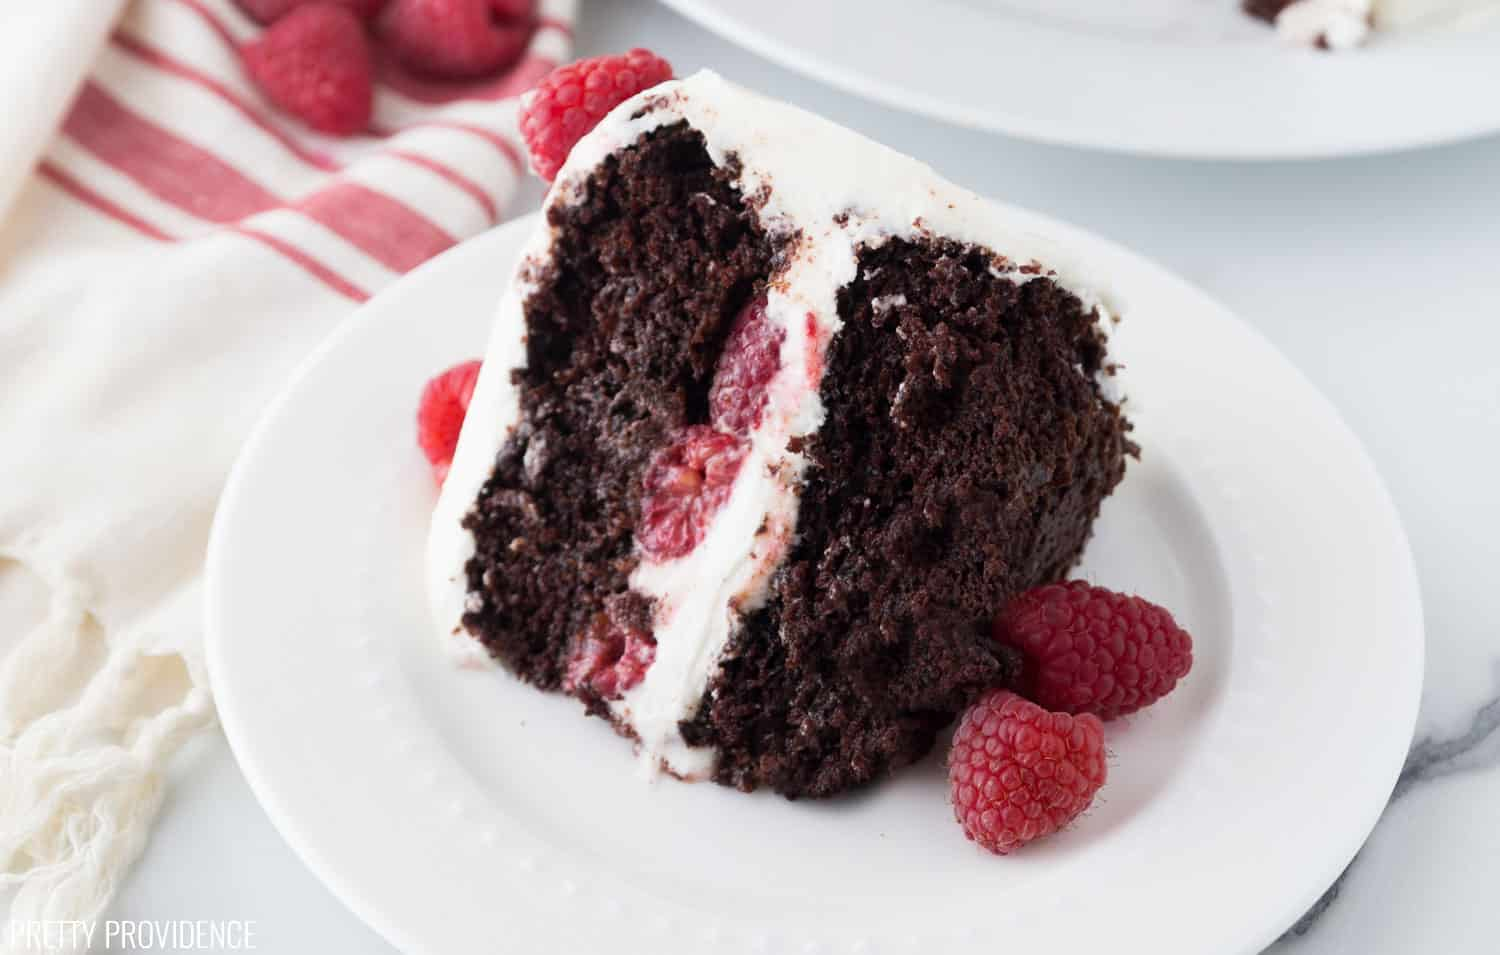 Chocolate Raspberry Cake with cream cheese frosting and raspberries inside the middle layer and on the top.